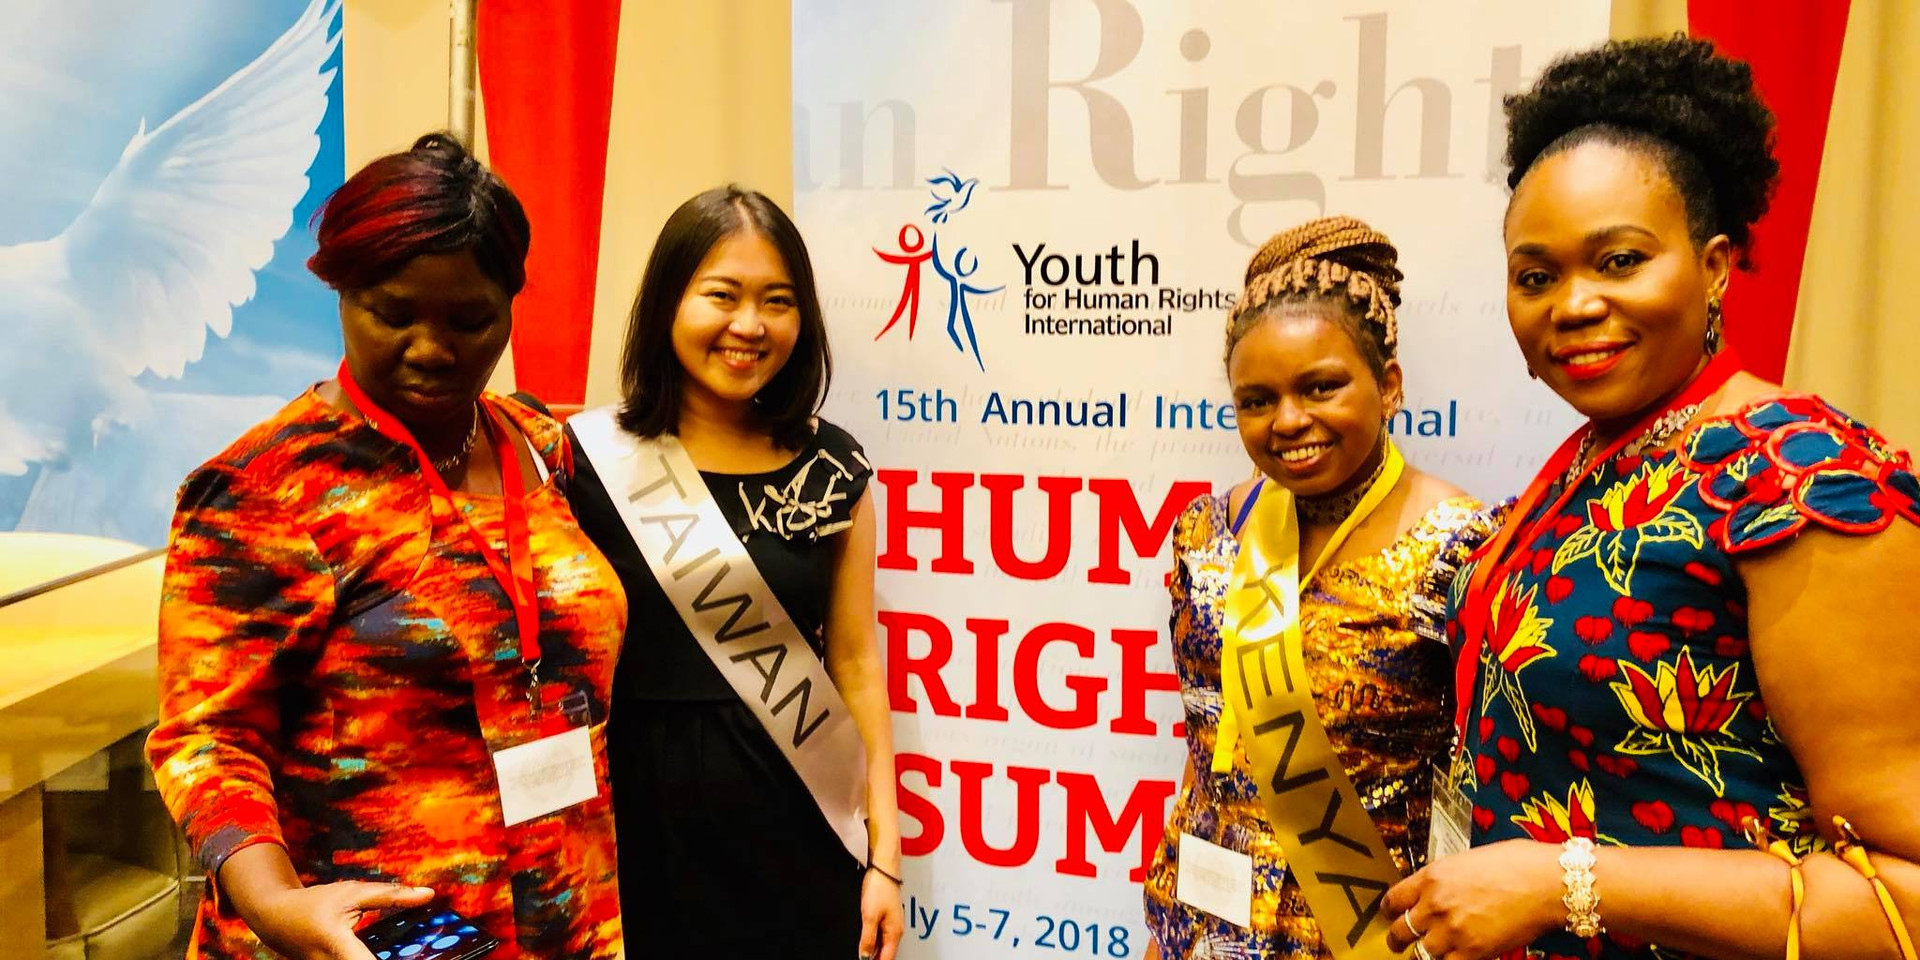 United Nations Human Rights Summit